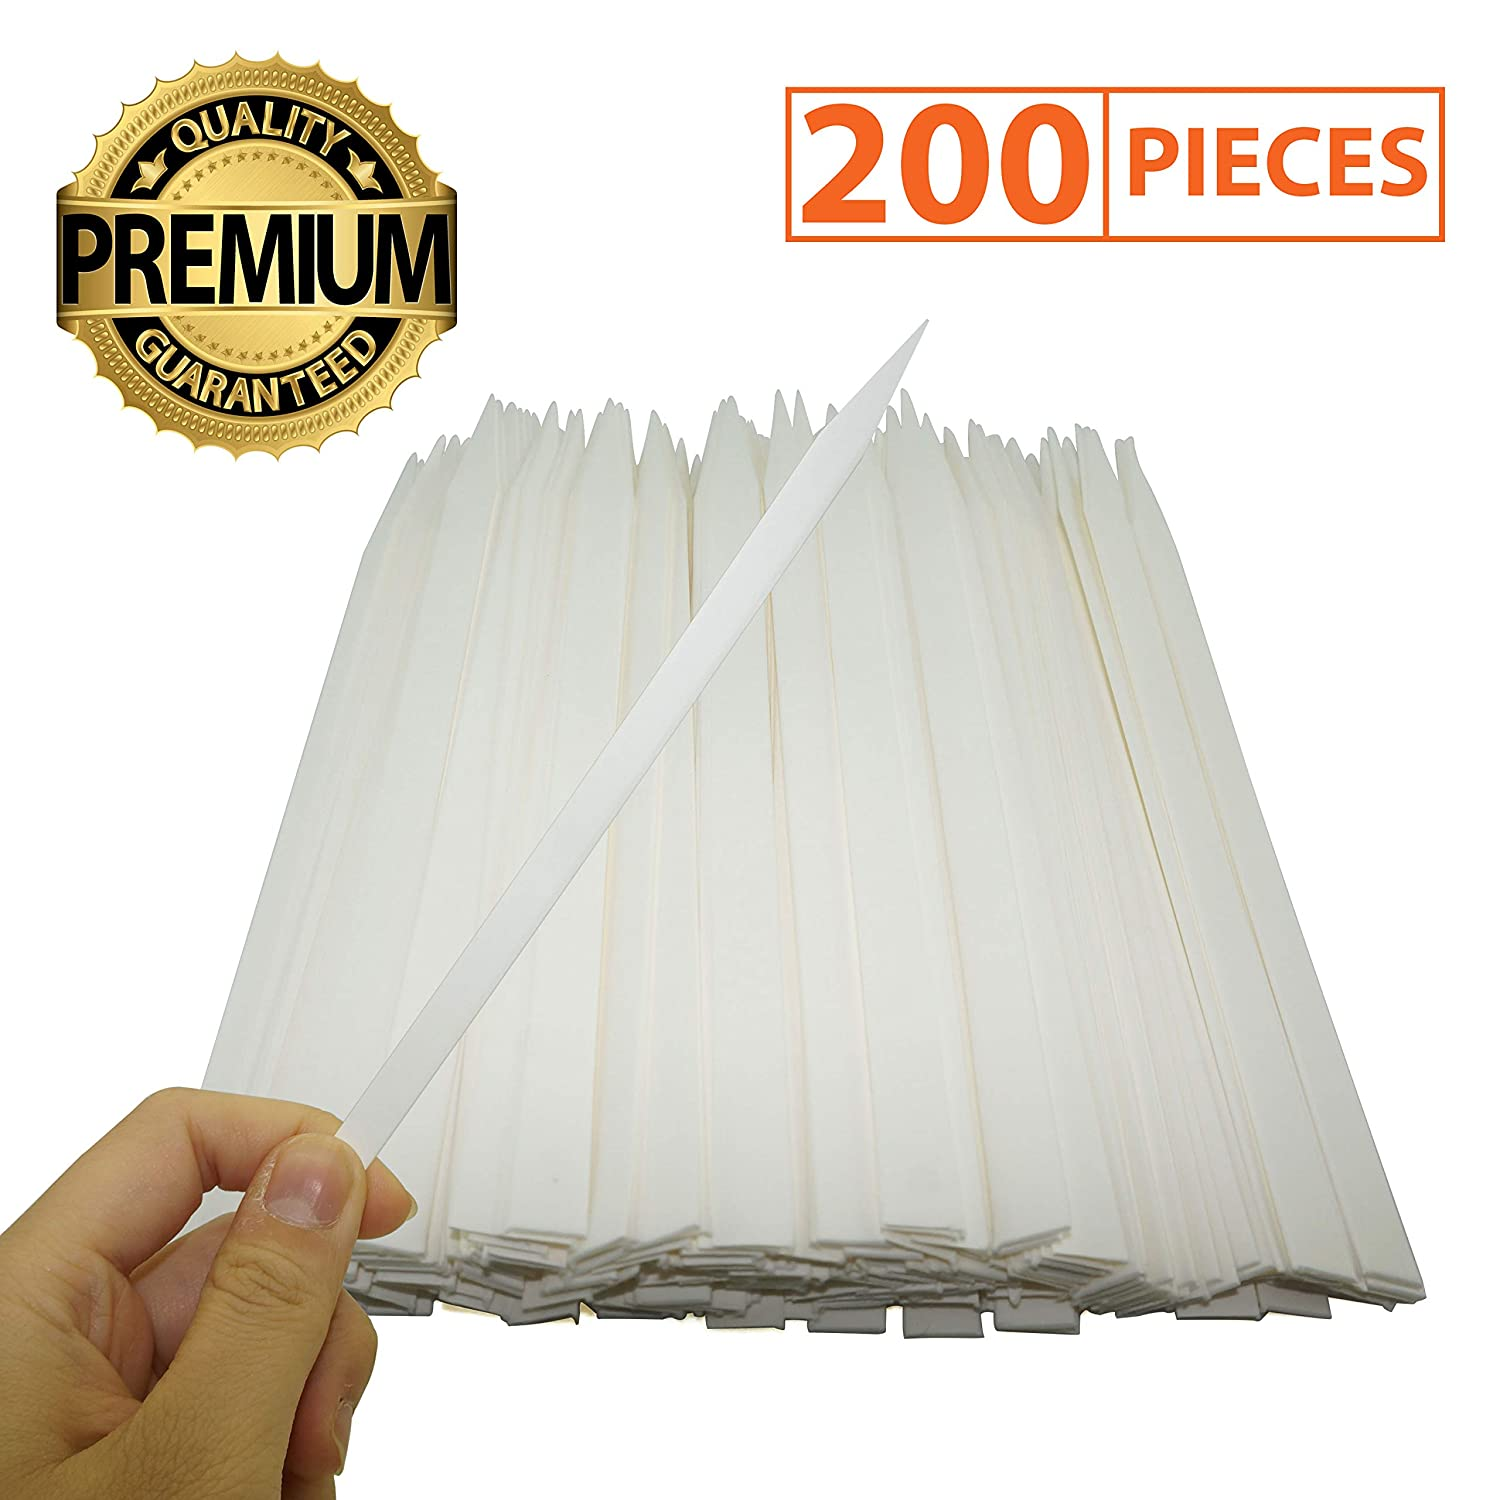 IFAMIO Premium 200 Pcs Perfume Test Sharp Paper Strips for Essential Oil Scent Fragrance Tester Strips for Aromatherapy